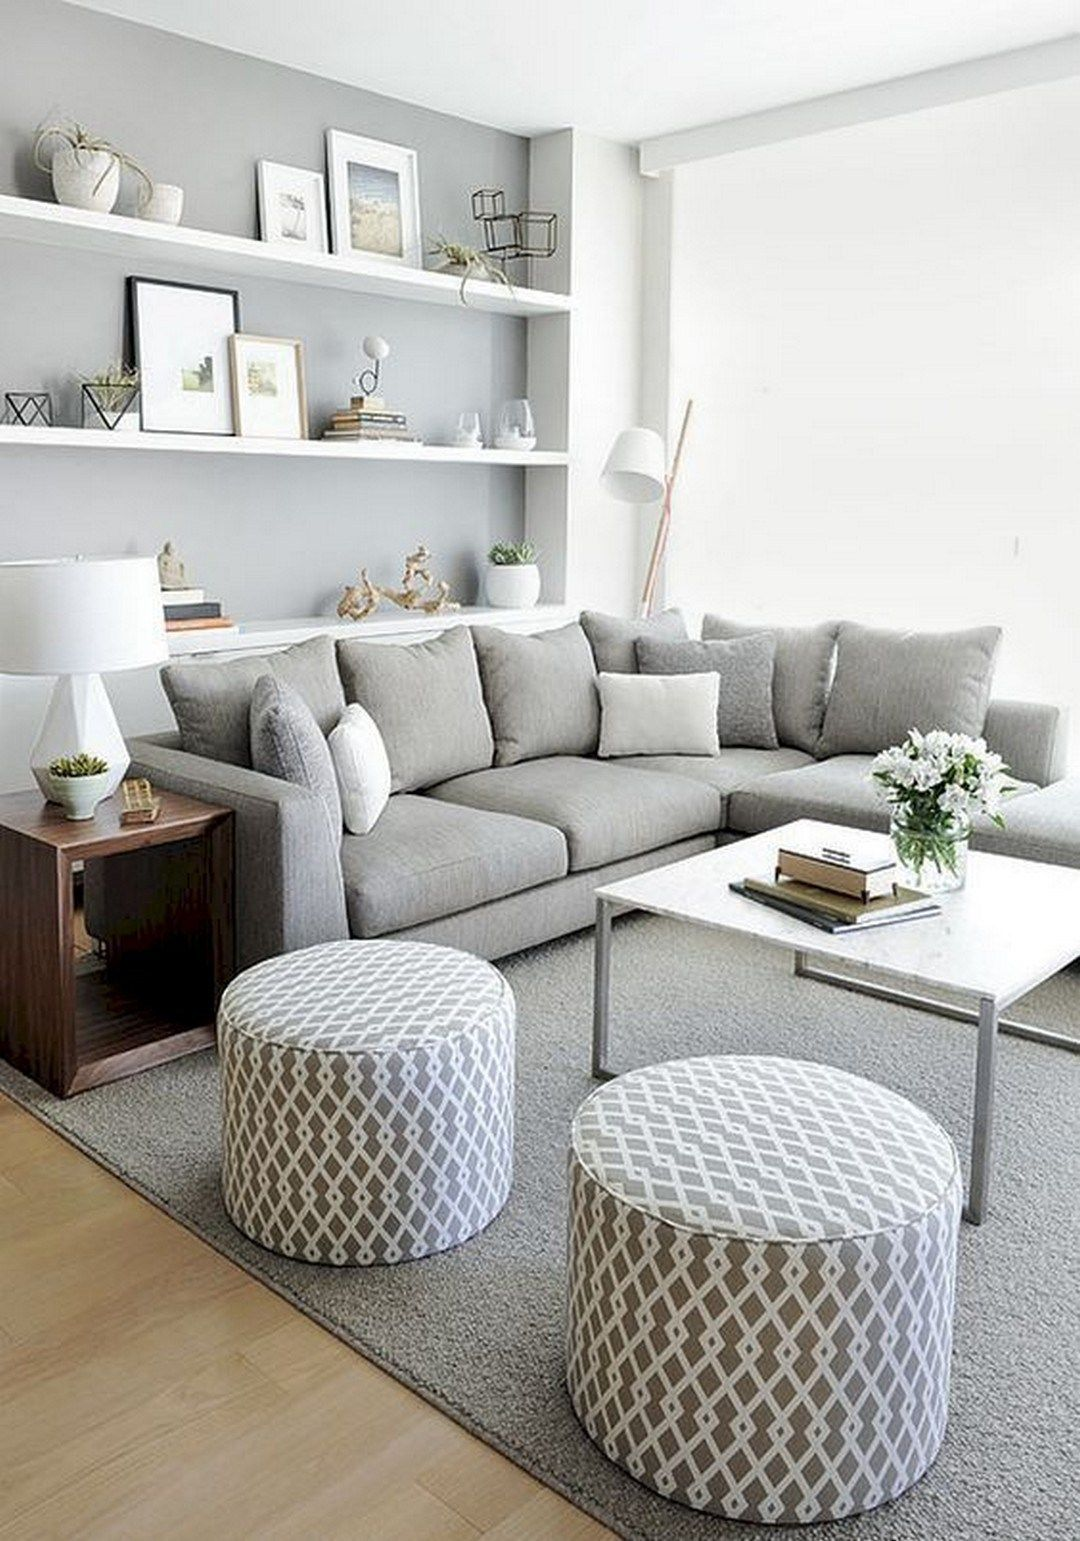 Diy Apartment Decorating Ideas On A Budget 66 In 2019